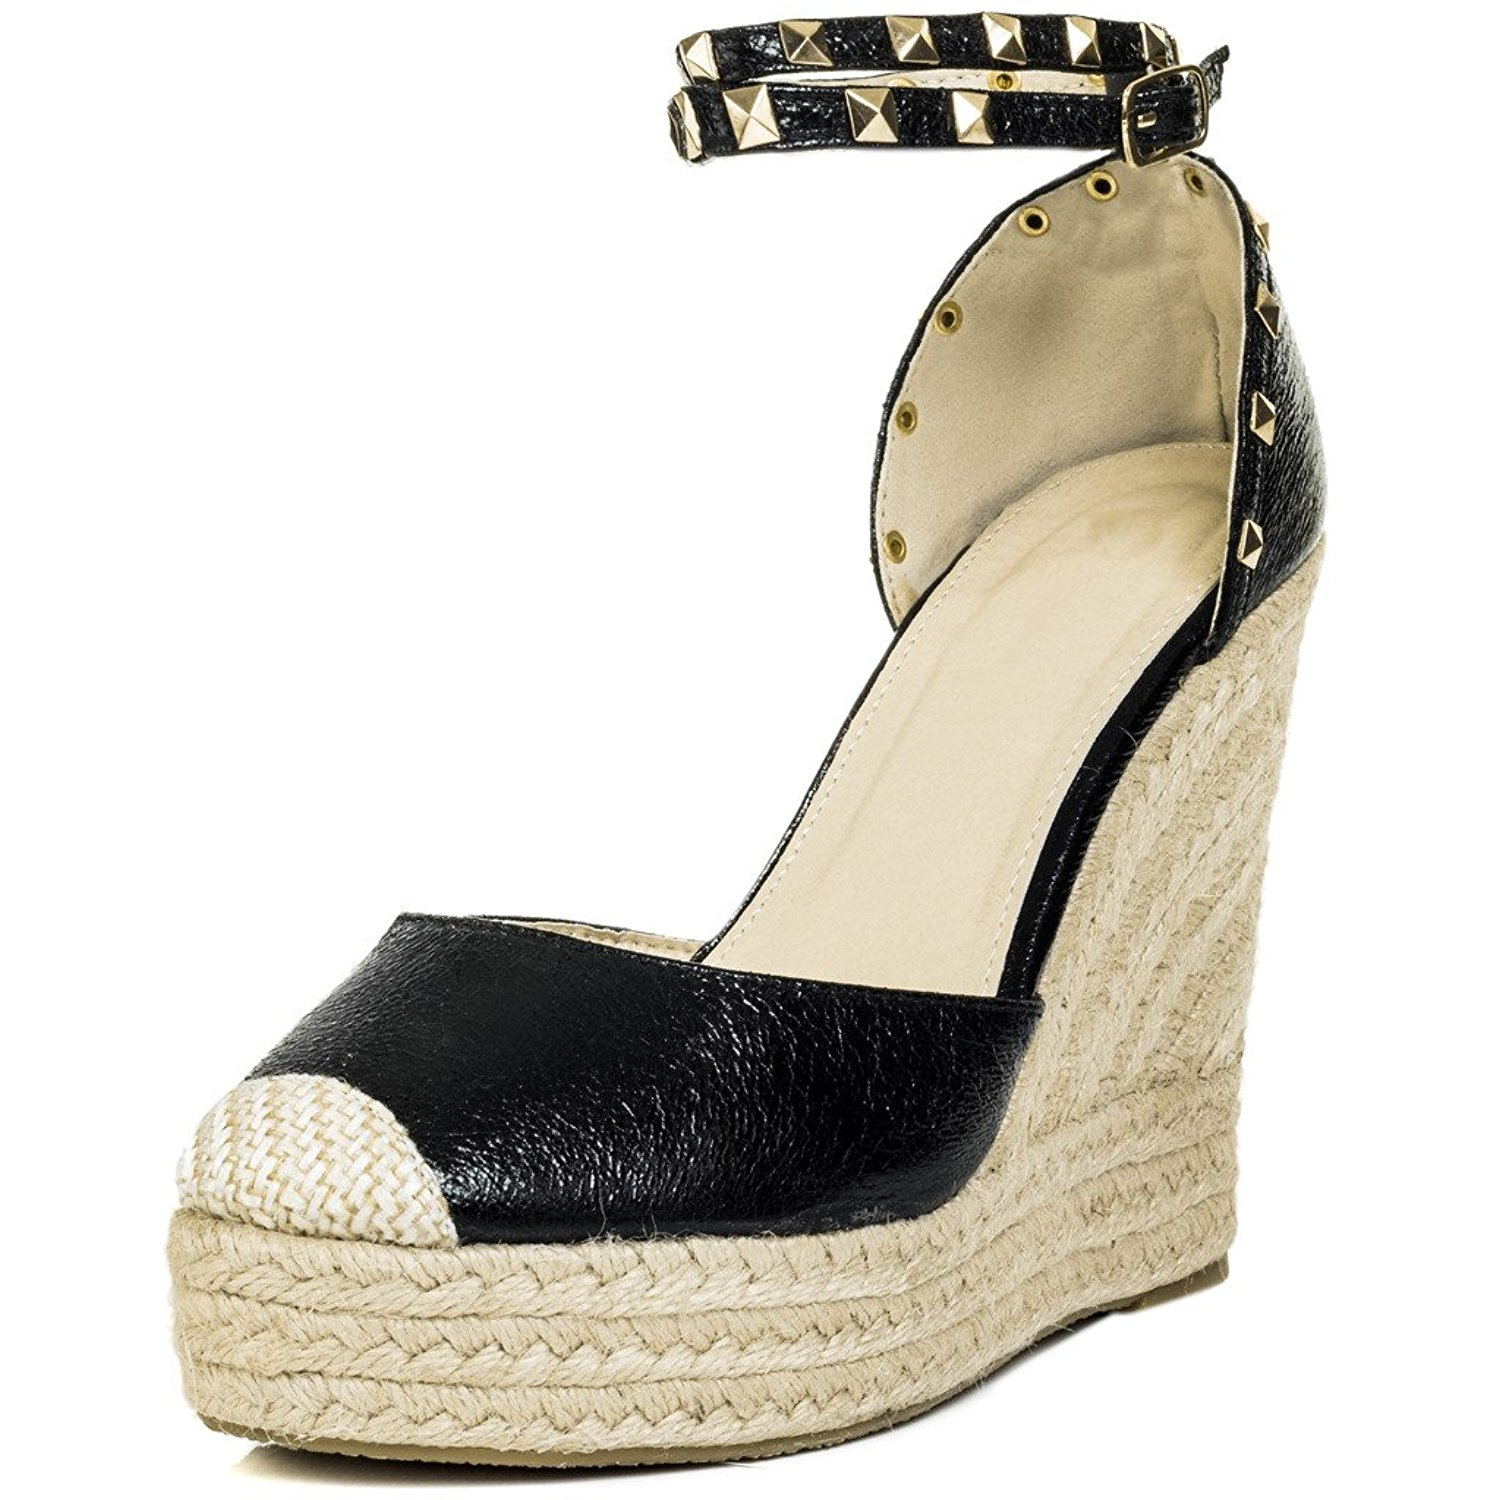 224e052061c40 Get Quotations · SPYLOVEBUY CARLEY Women s Espadrille Studded Wedge Heel  Strappy Sandals